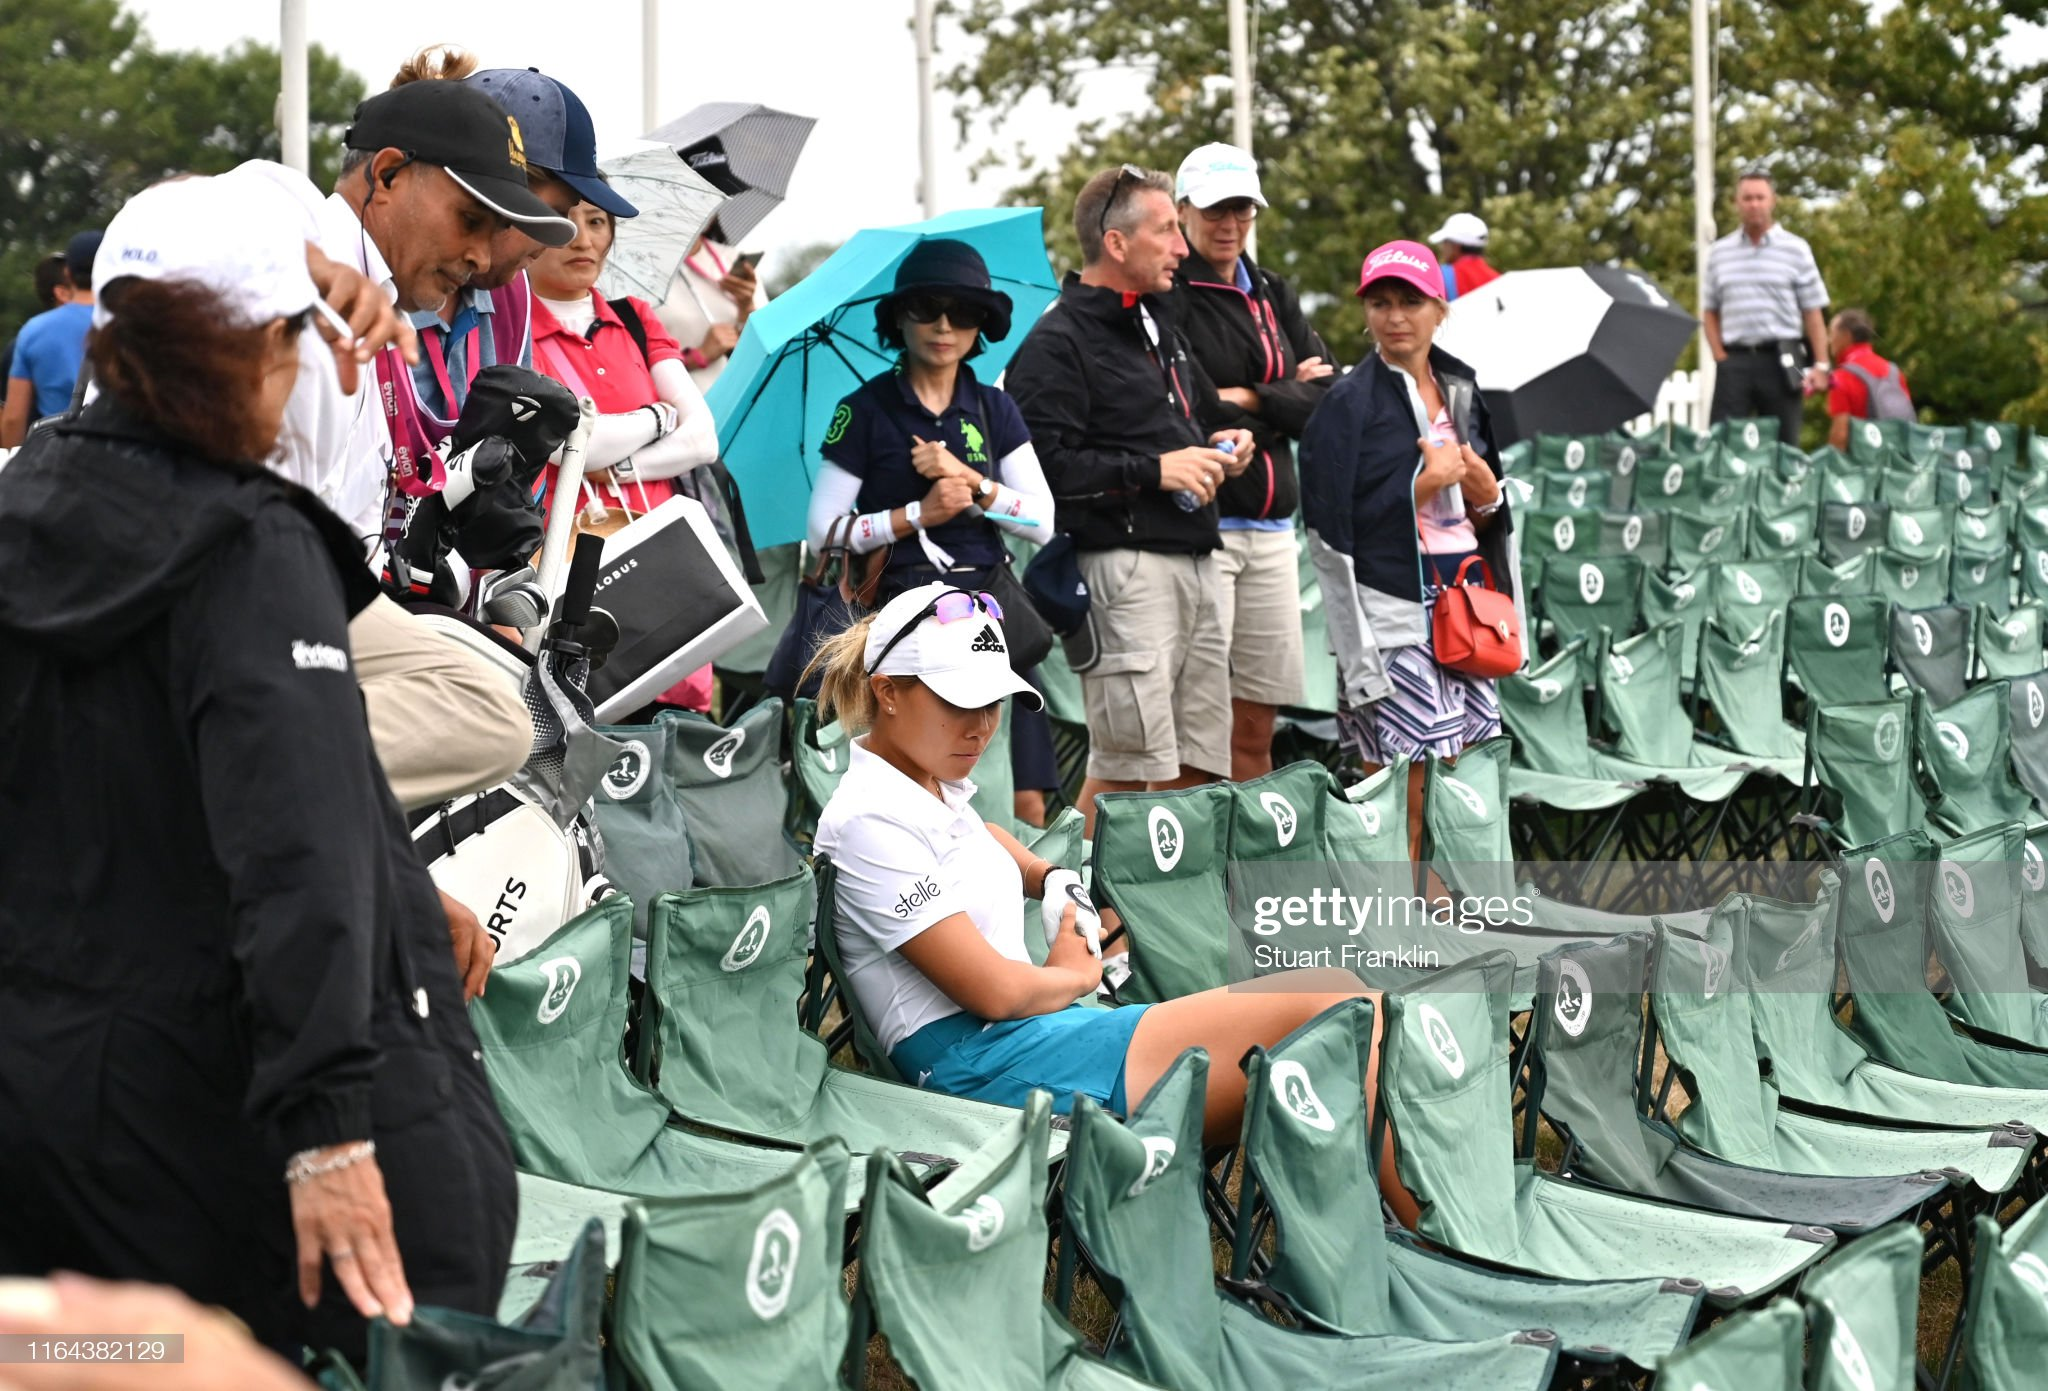 https://media.gettyimages.com/photos/danielle-kang-of-the-united-states-takes-a-seat-on-the-18th-as-her-picture-id1164382129?s=2048x2048